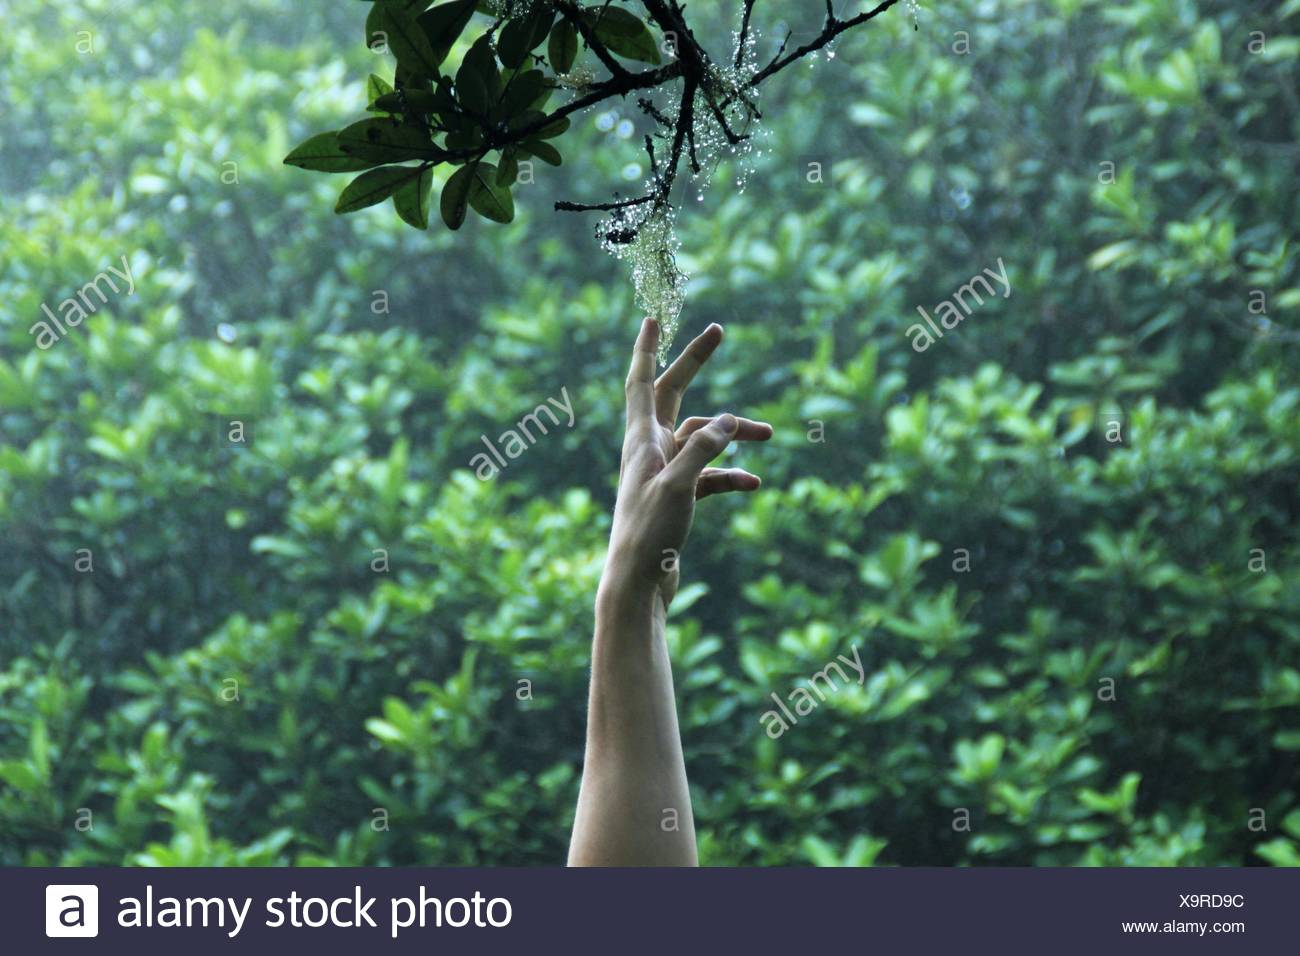 Man's Hand reaching for flower on branch, La Reunion, France - Stock Image